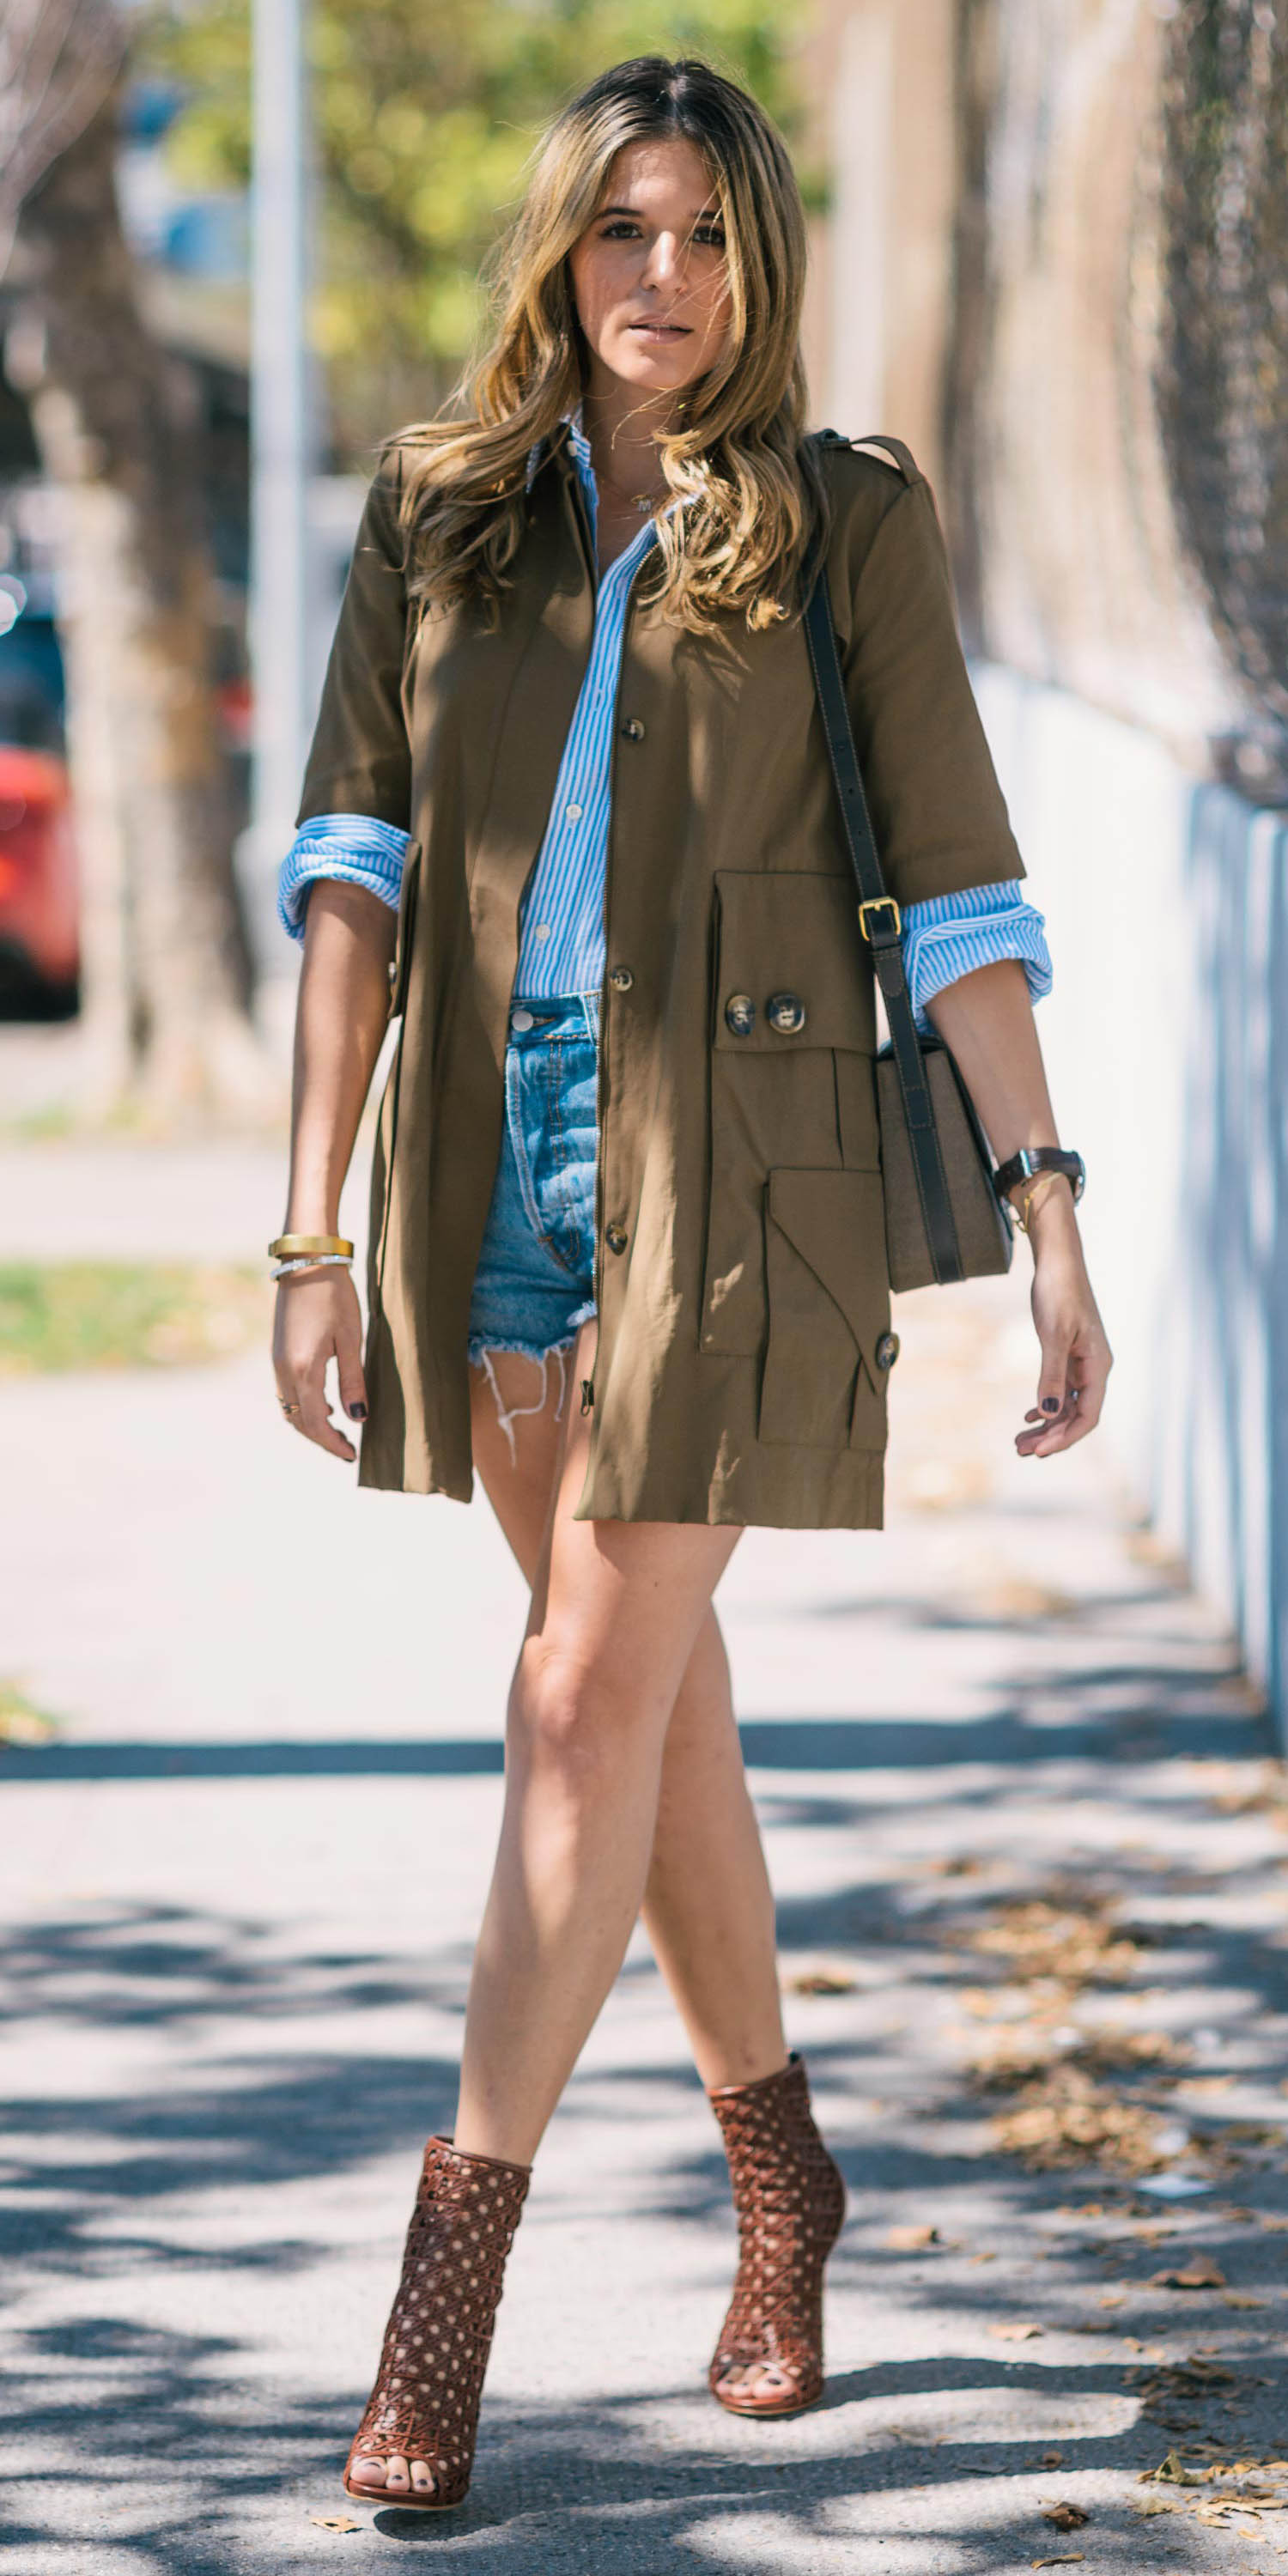 blue-med-shorts-blue-light-collared-shirt-camel-jacket-utility-brown-shoe-booties-blonde-fall-winter-lunch.jpg